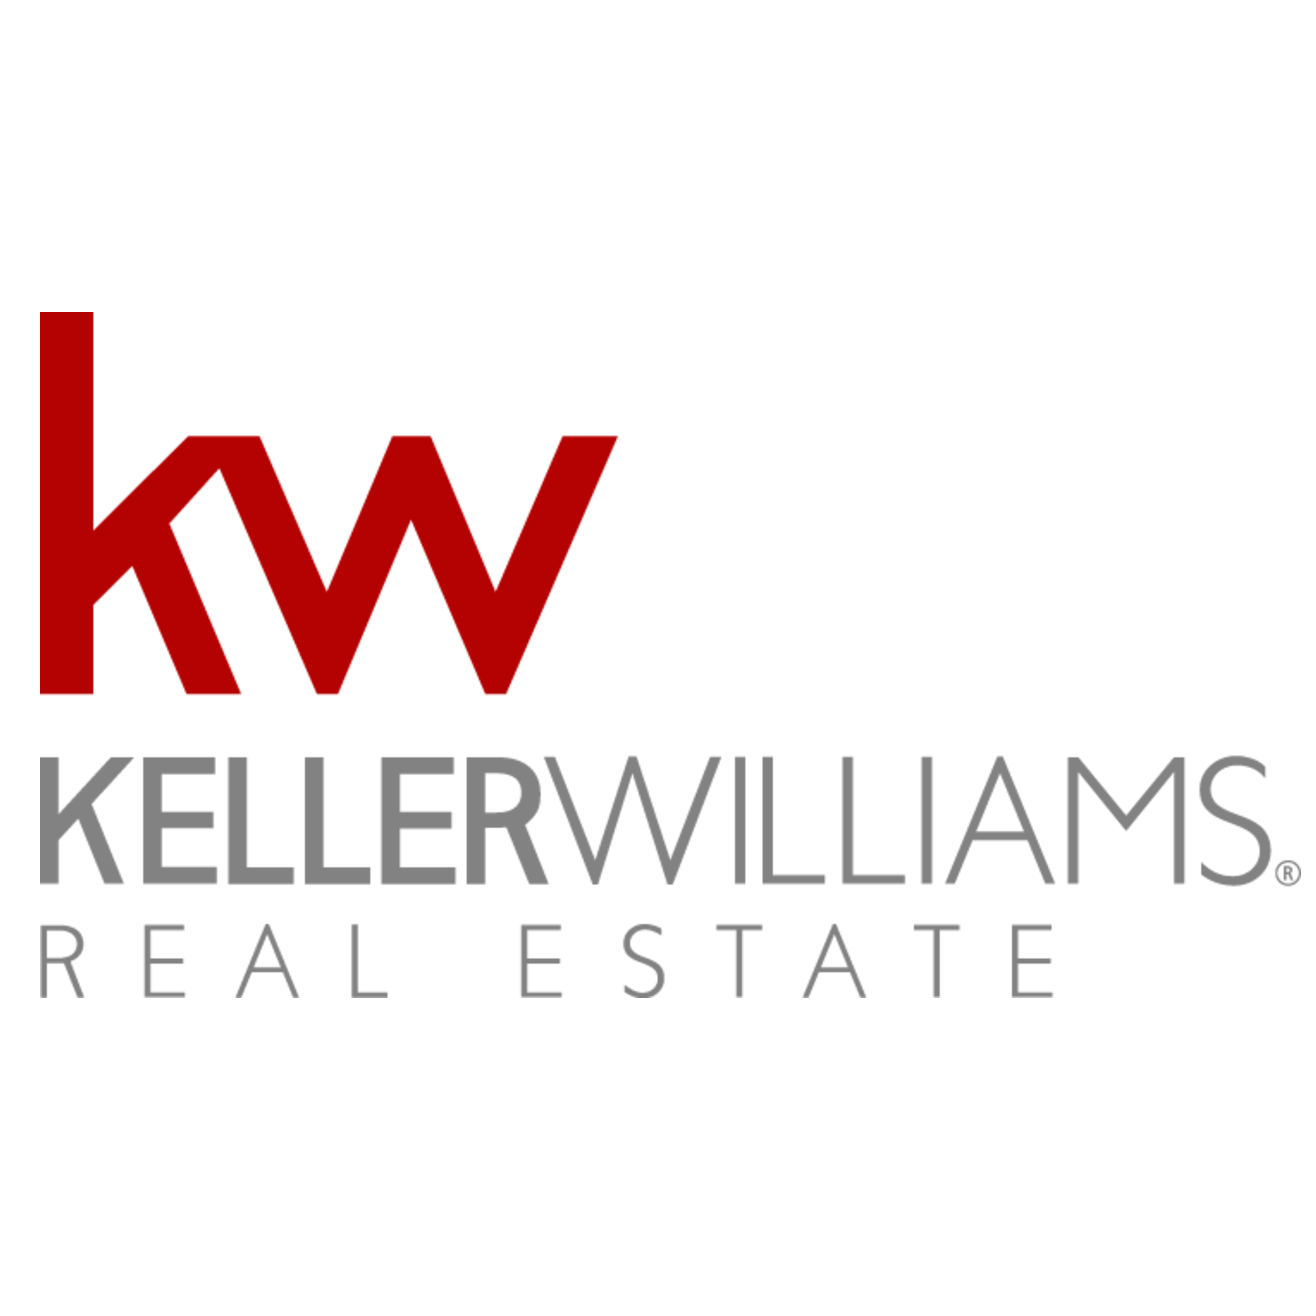 Tom Roth Home Sales | Keller Williams Real Estate - Allentown, PA - Real Estate Agents